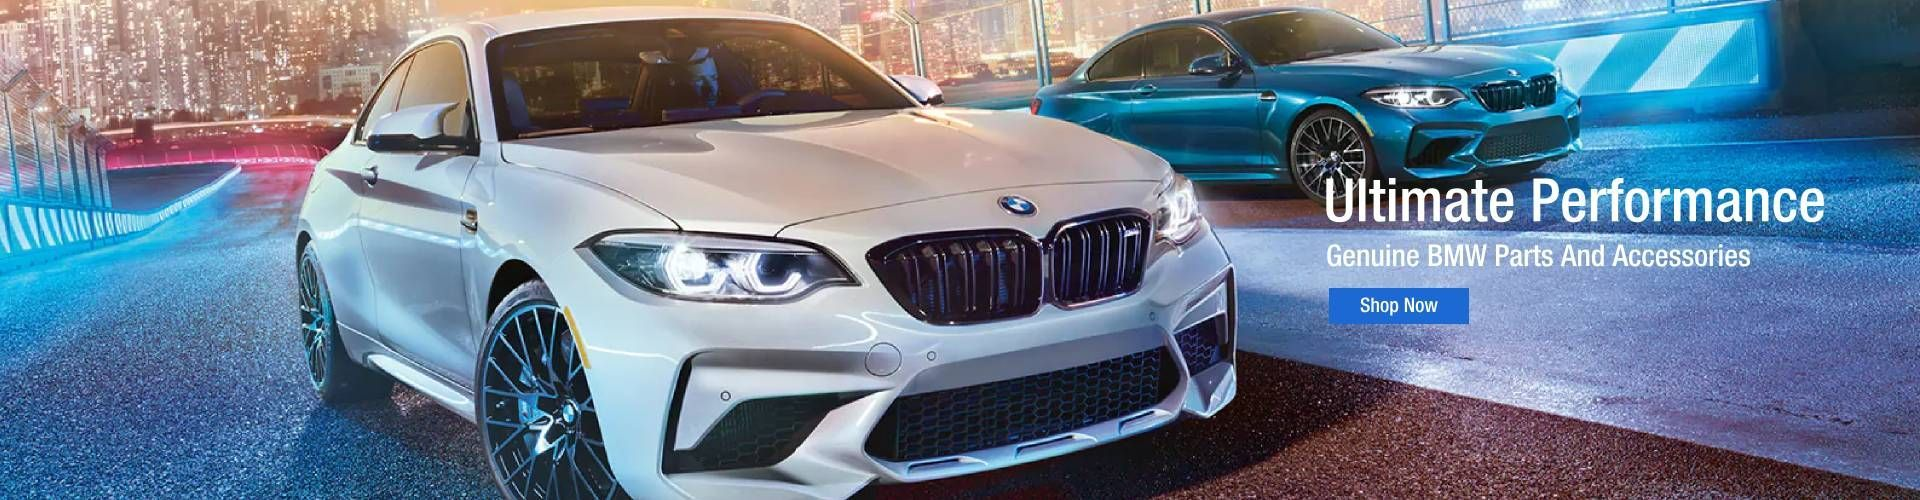 hight resolution of bmw accessories